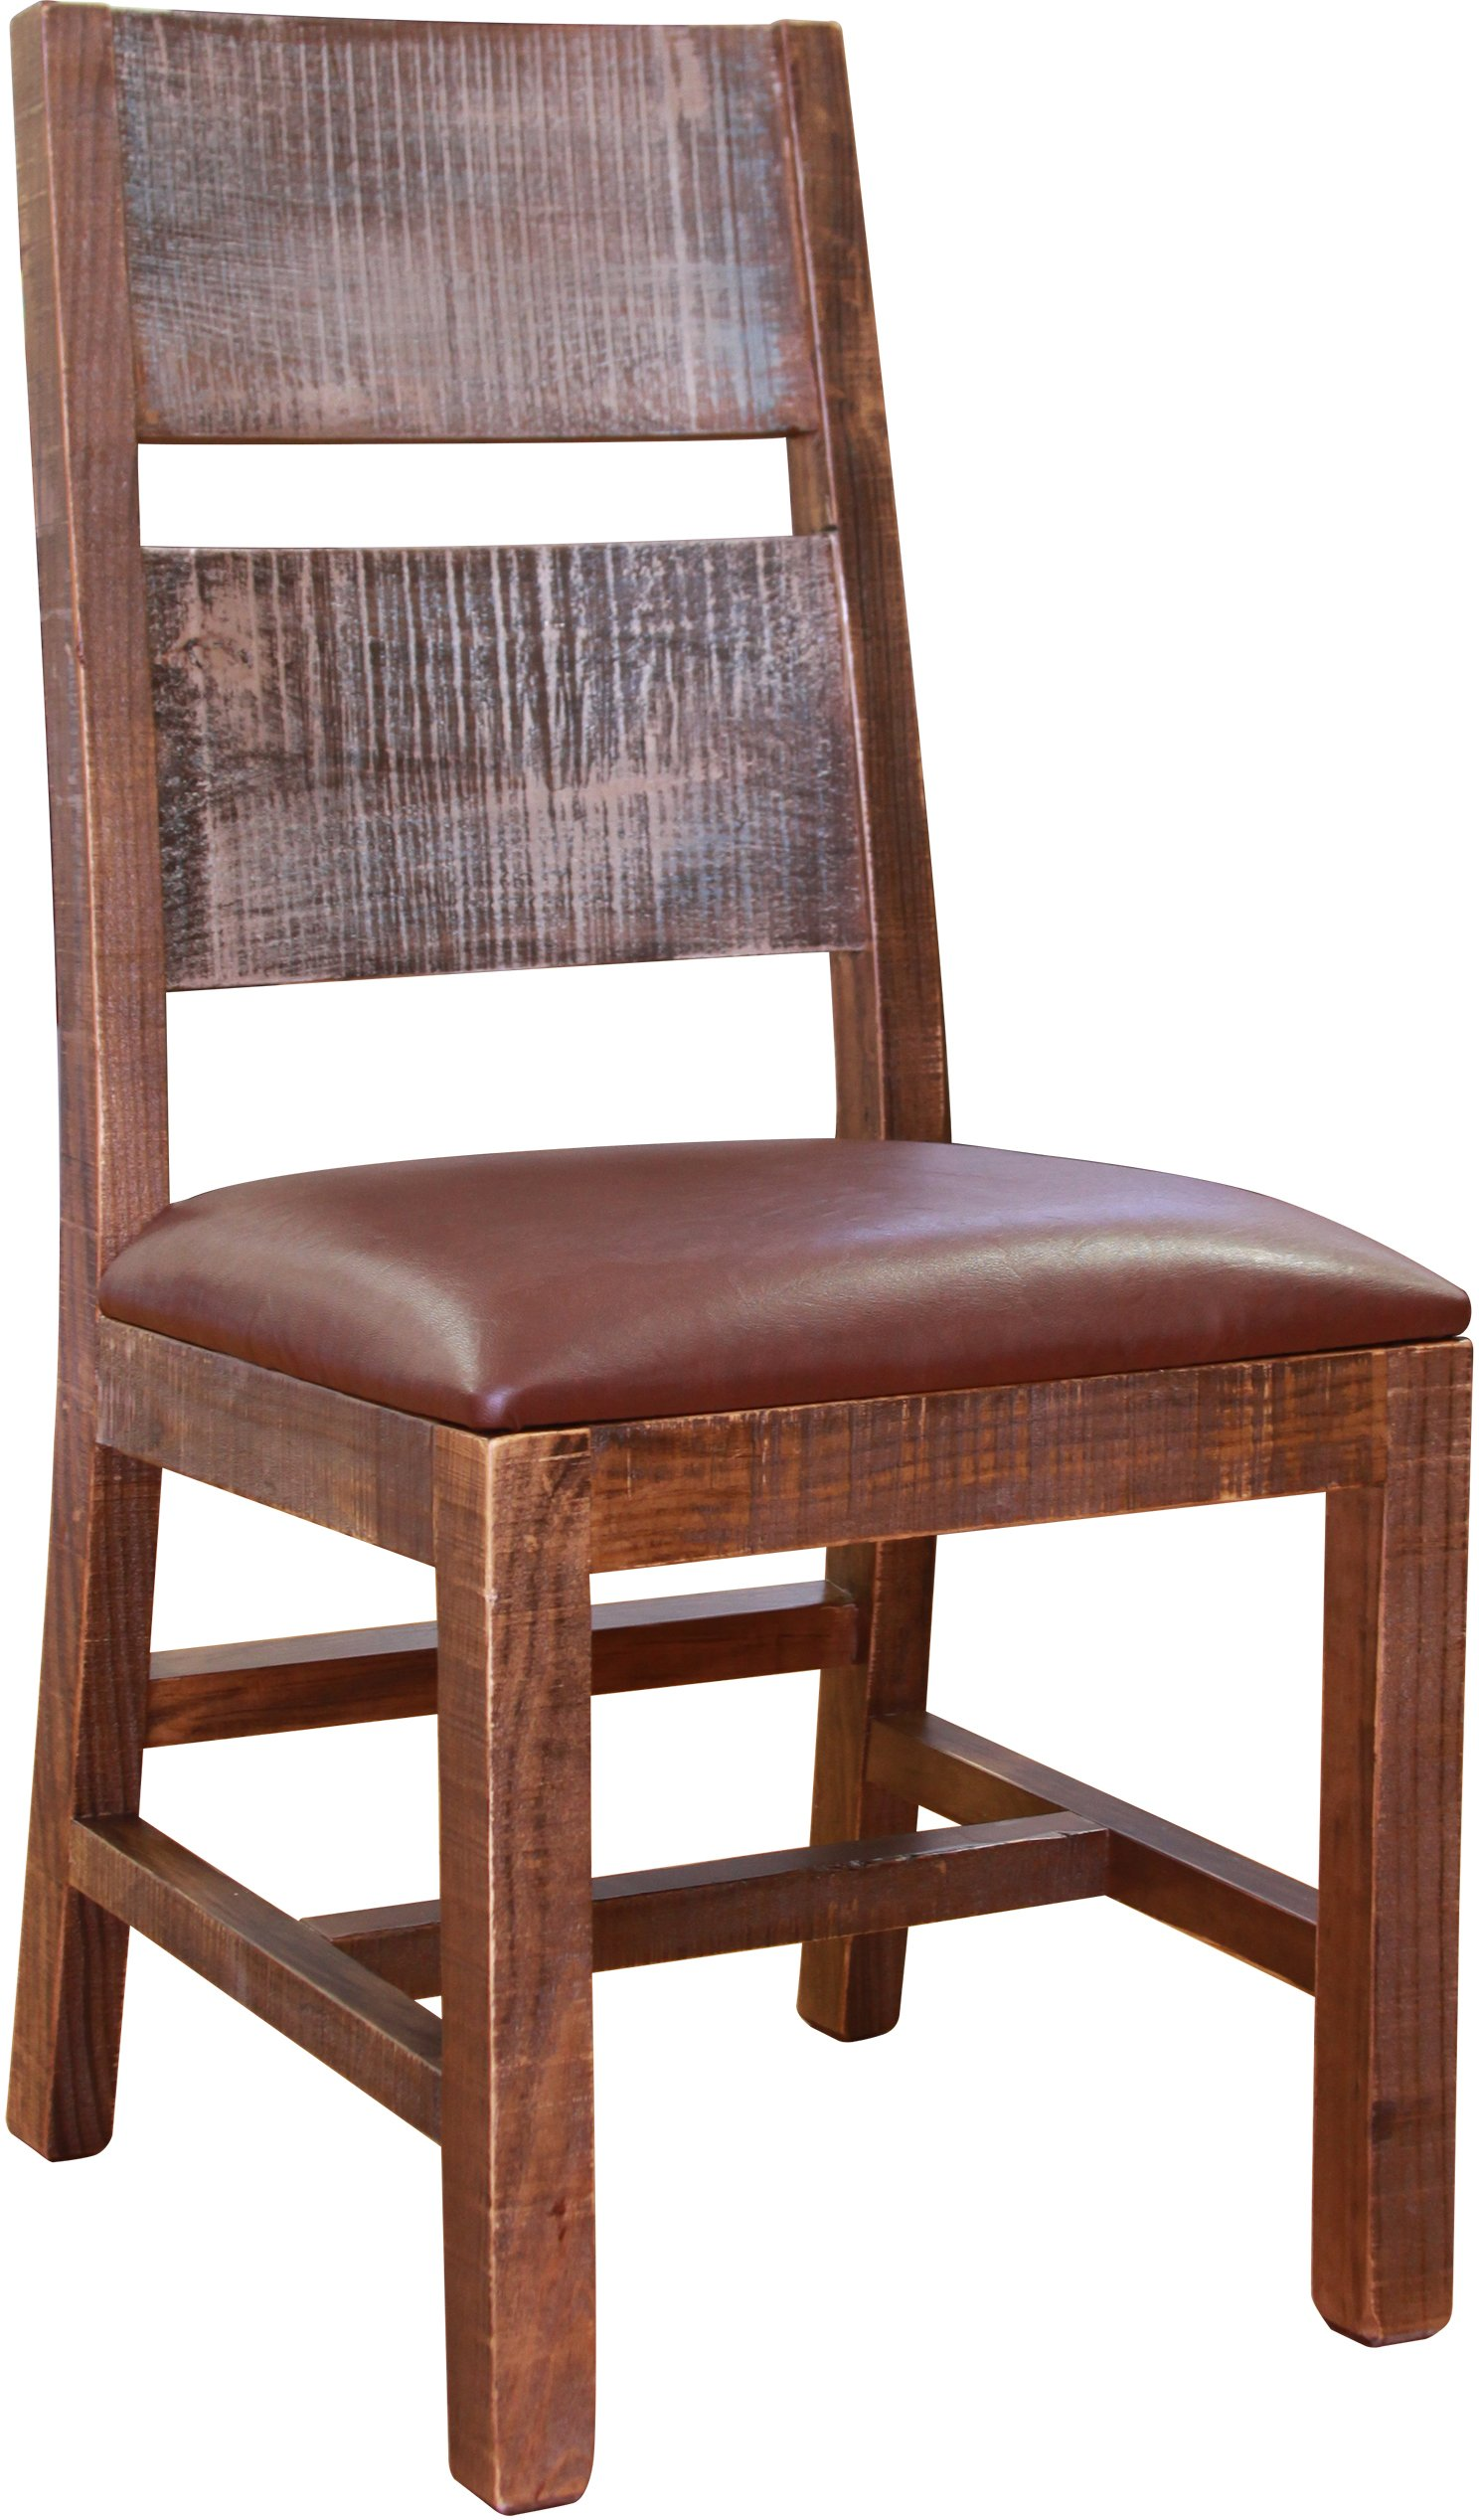 Antique Pine Dining Room Chair - Pine 5 Piece Dining Set - Rustic Antique RC Willey Furniture Store